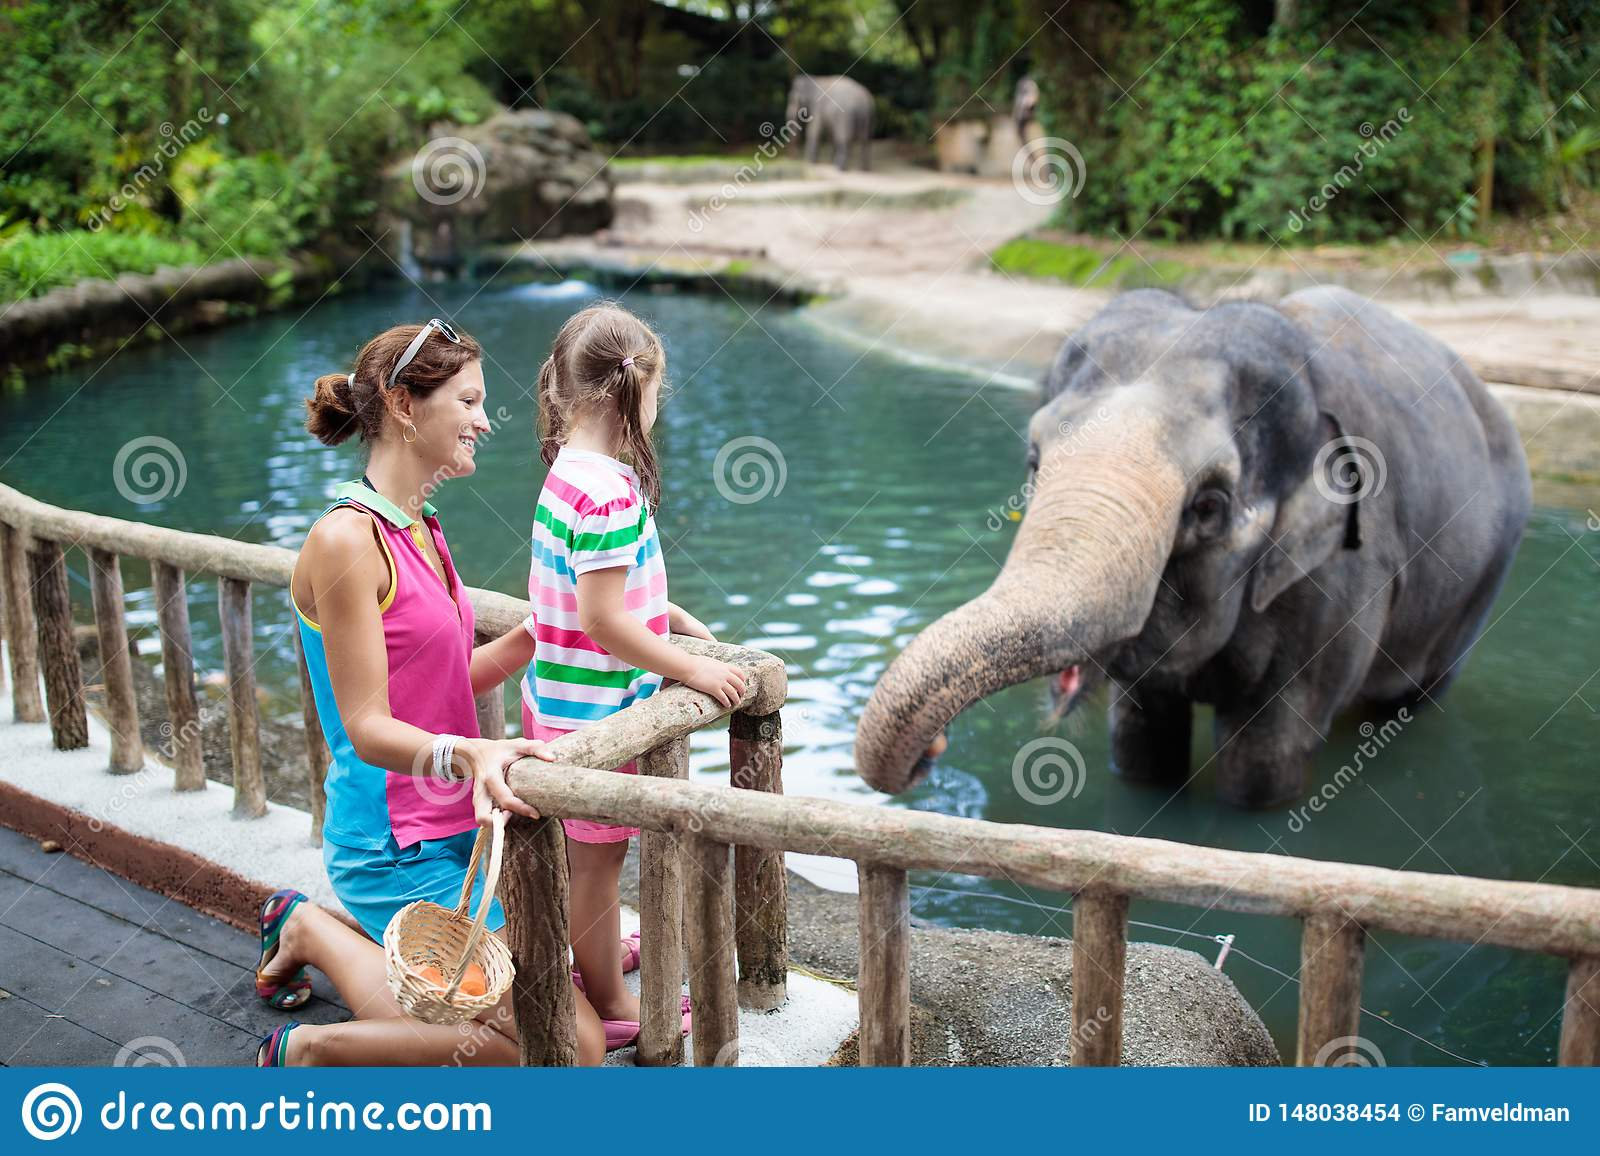 Kids feed elephant in zoo. Family at animal park